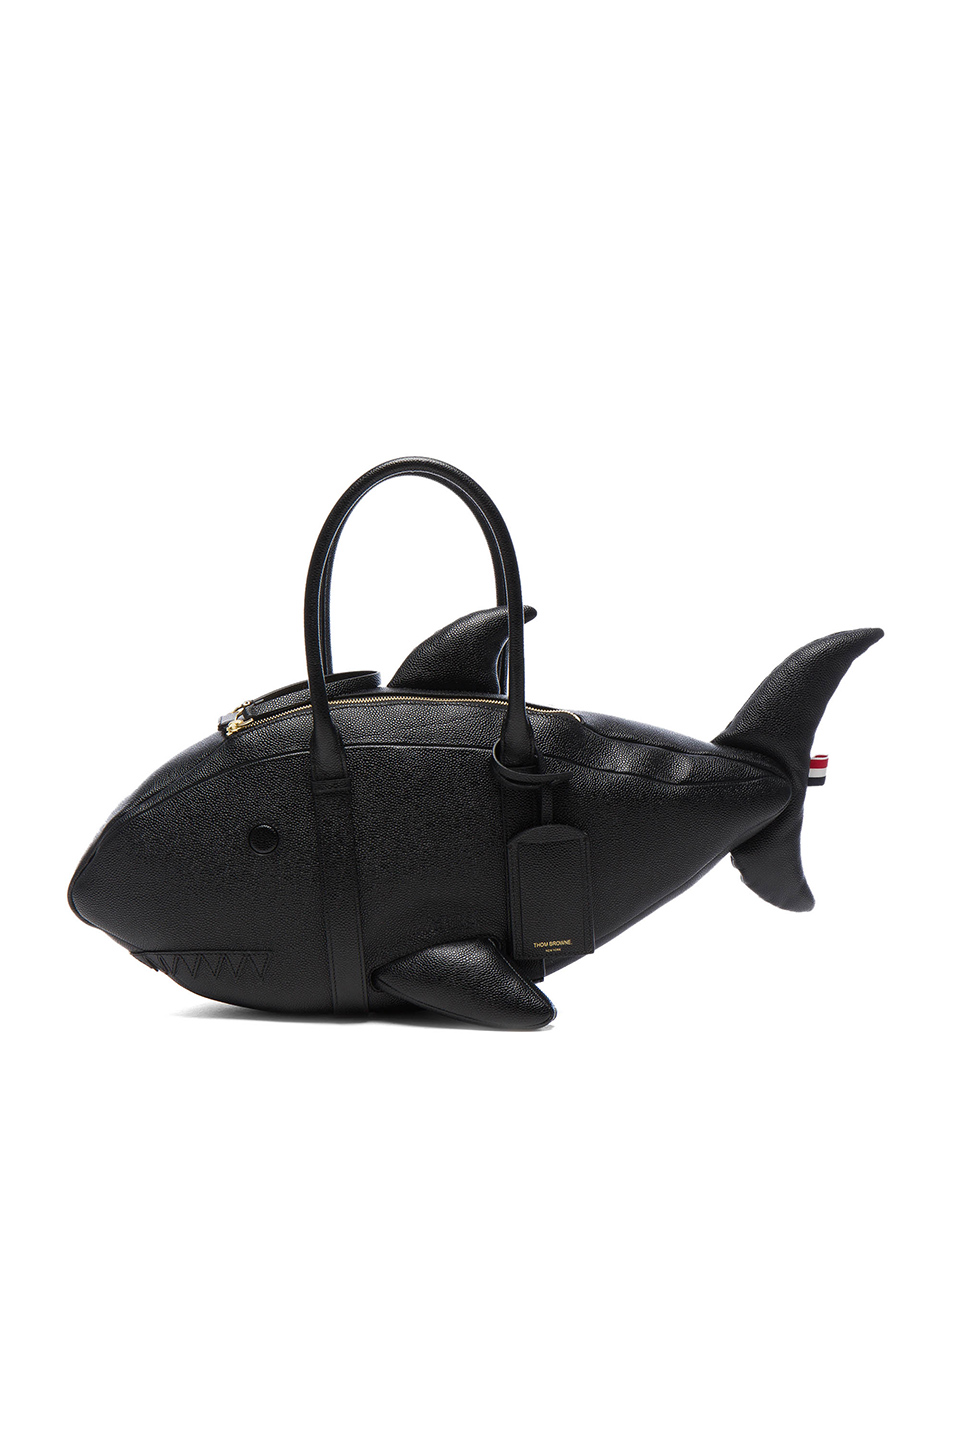 Thom Browne Shark Bag in Black